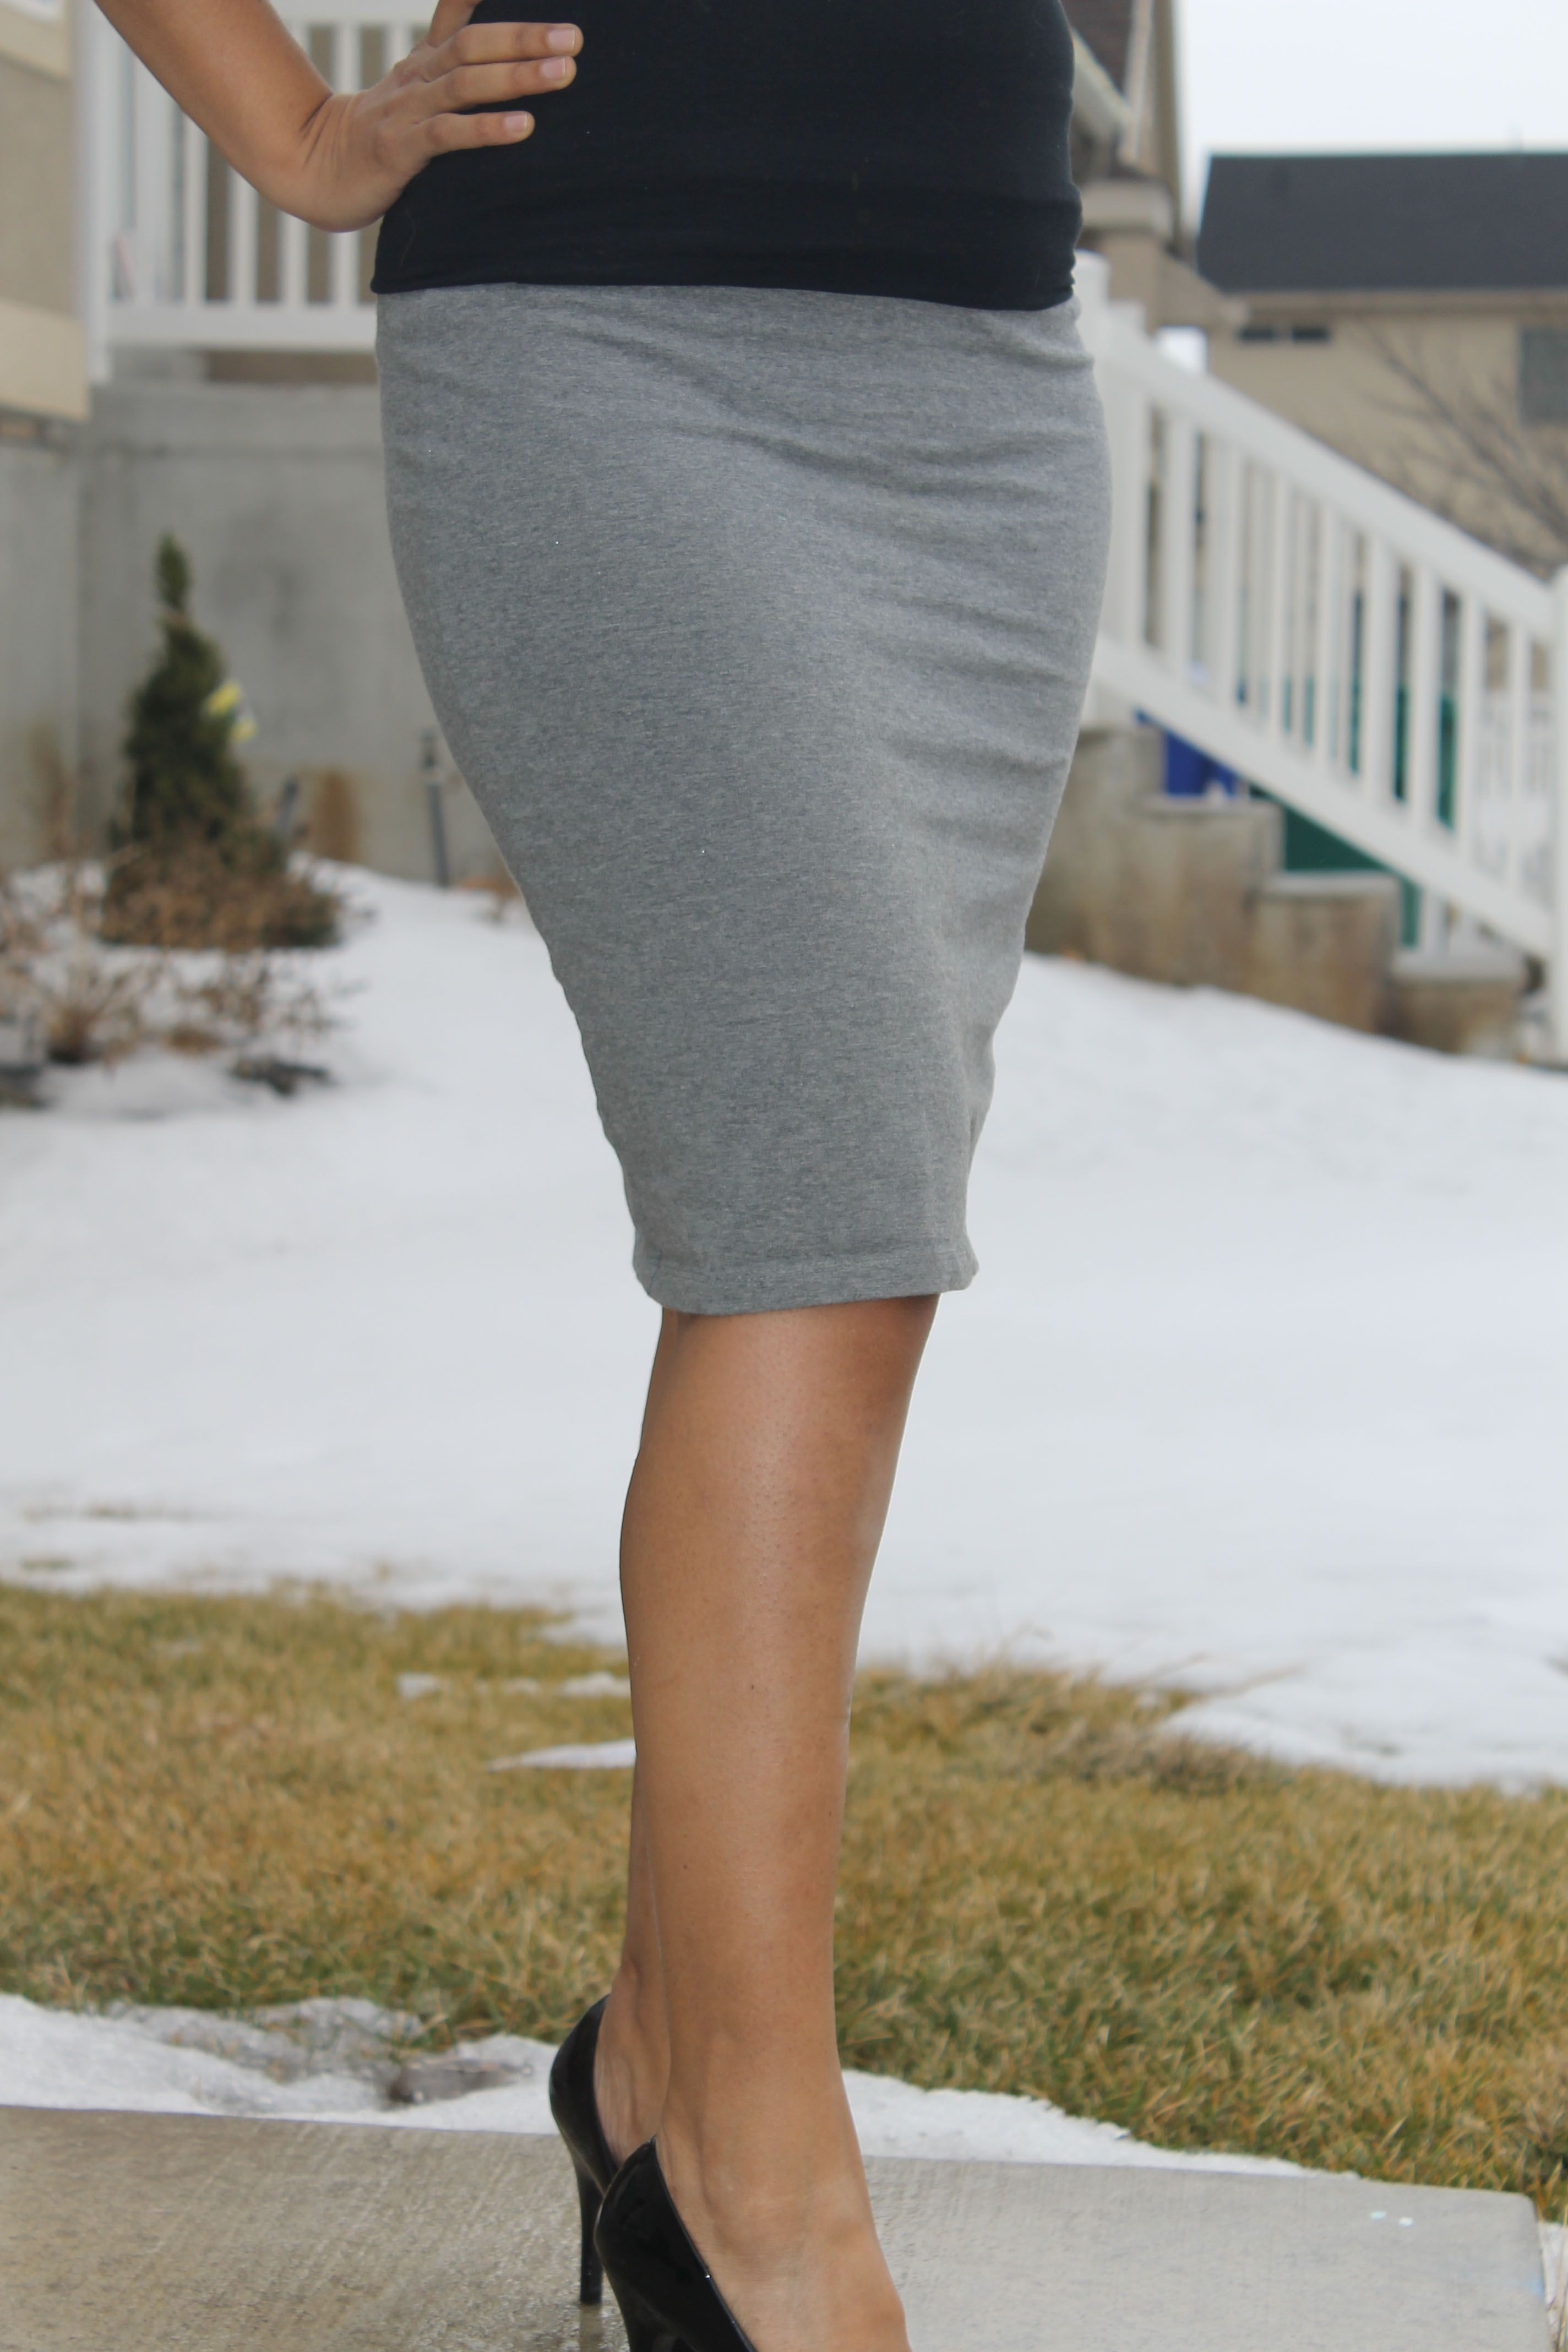 This is one of my favorite skirt patterns this sexy pencil skirt go vintage or go trendy with one of these free skirt patterns how to make a pencil skirt 11 free skirt patterns is going to show you exactly how to add bankloansurffo Images